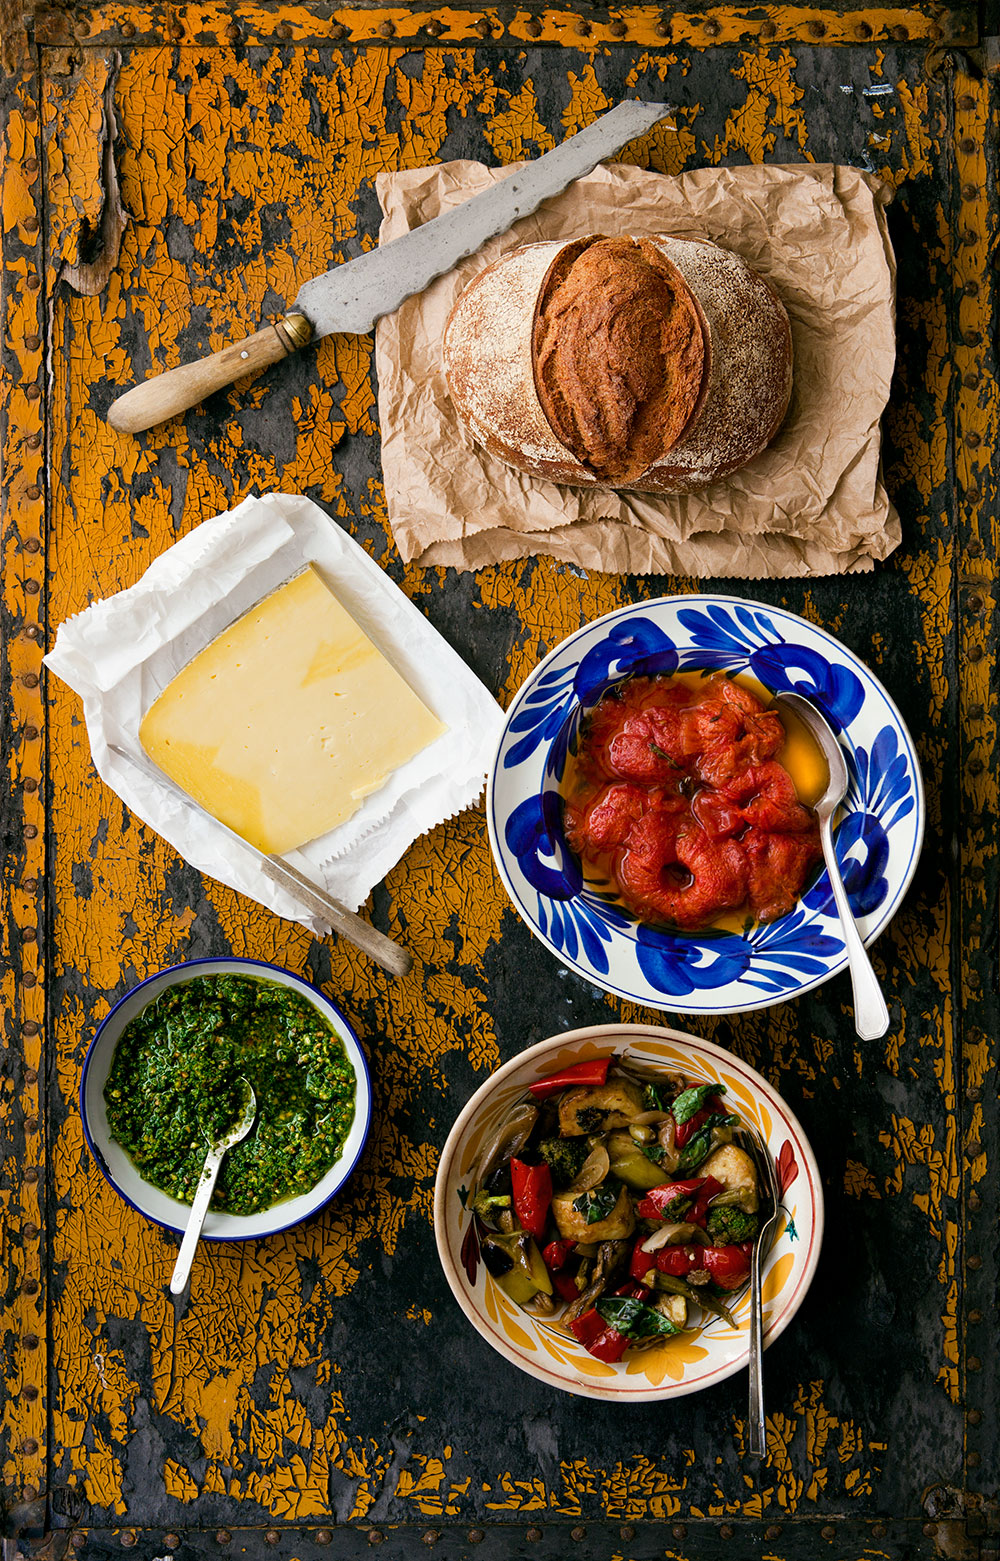 Tomato Confit, Pesto and Oven-Roasted Vegetable Sandwich - Ingredients